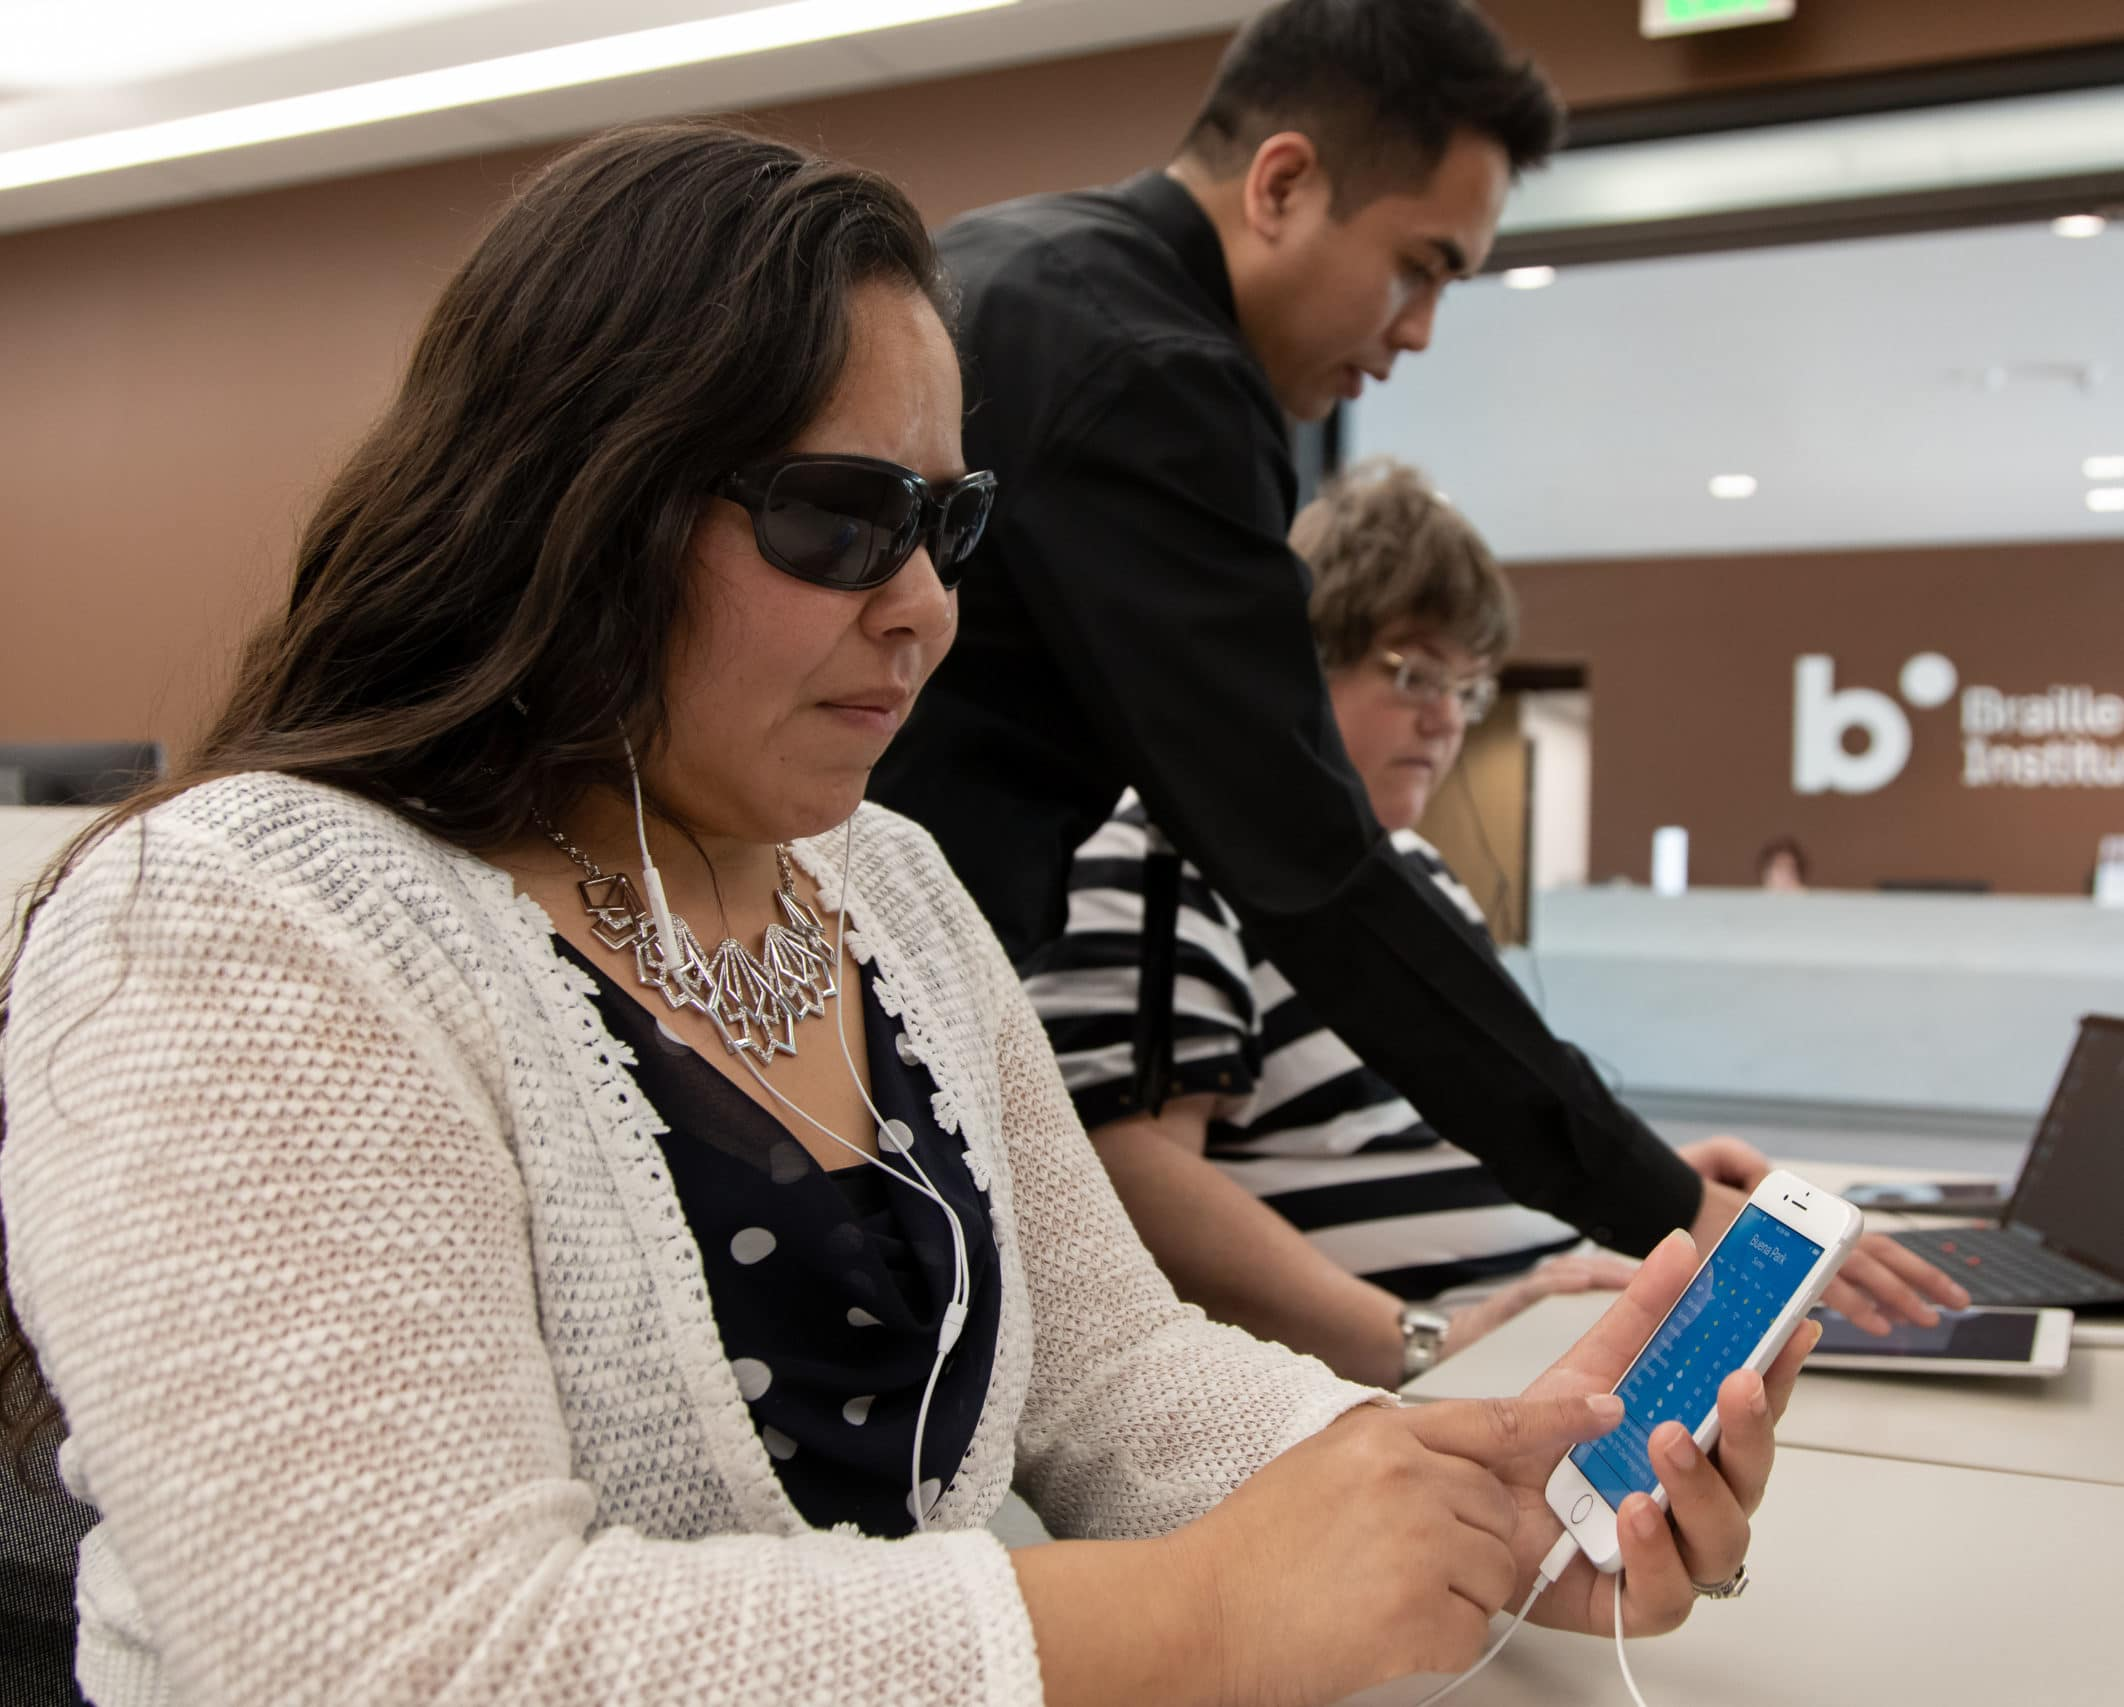 Visually impaired woman using iPhone as assistive device